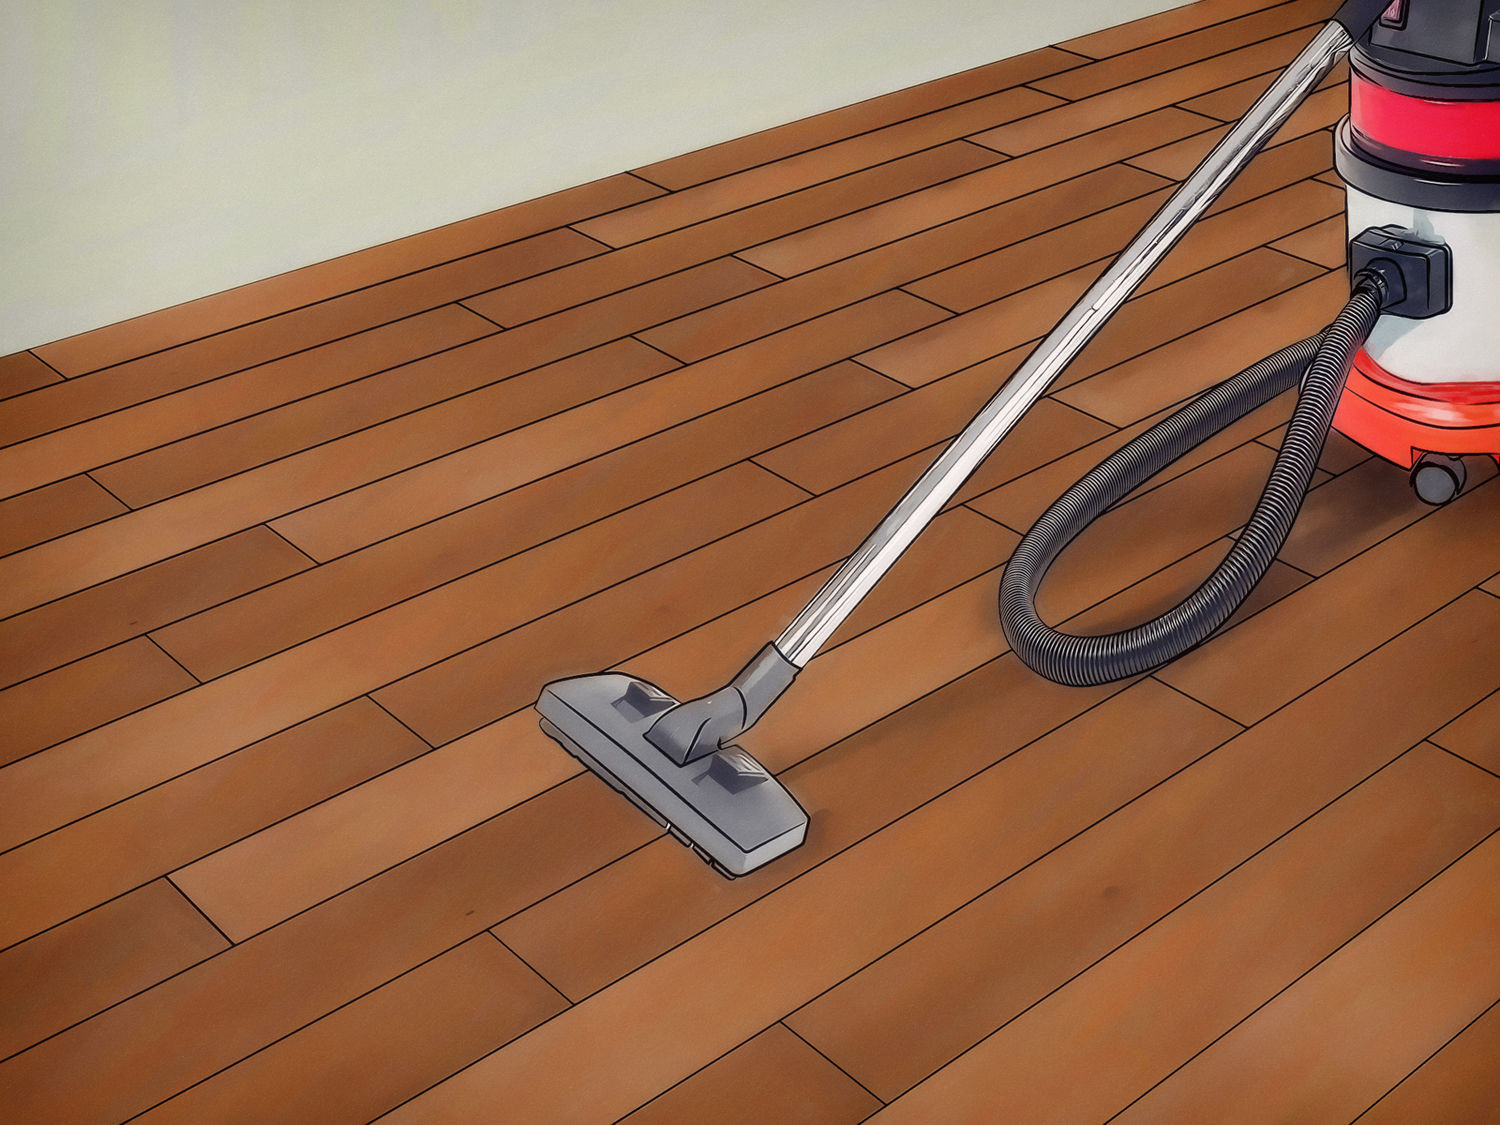 filling gaps in hardwood floors sawdust of how to finish hardwood floors a vripmaster inside vacuum the floor thoroughly to remove any dust and debris any water spots where the wood has turned black can be treated by mixing a 50 50 solution of